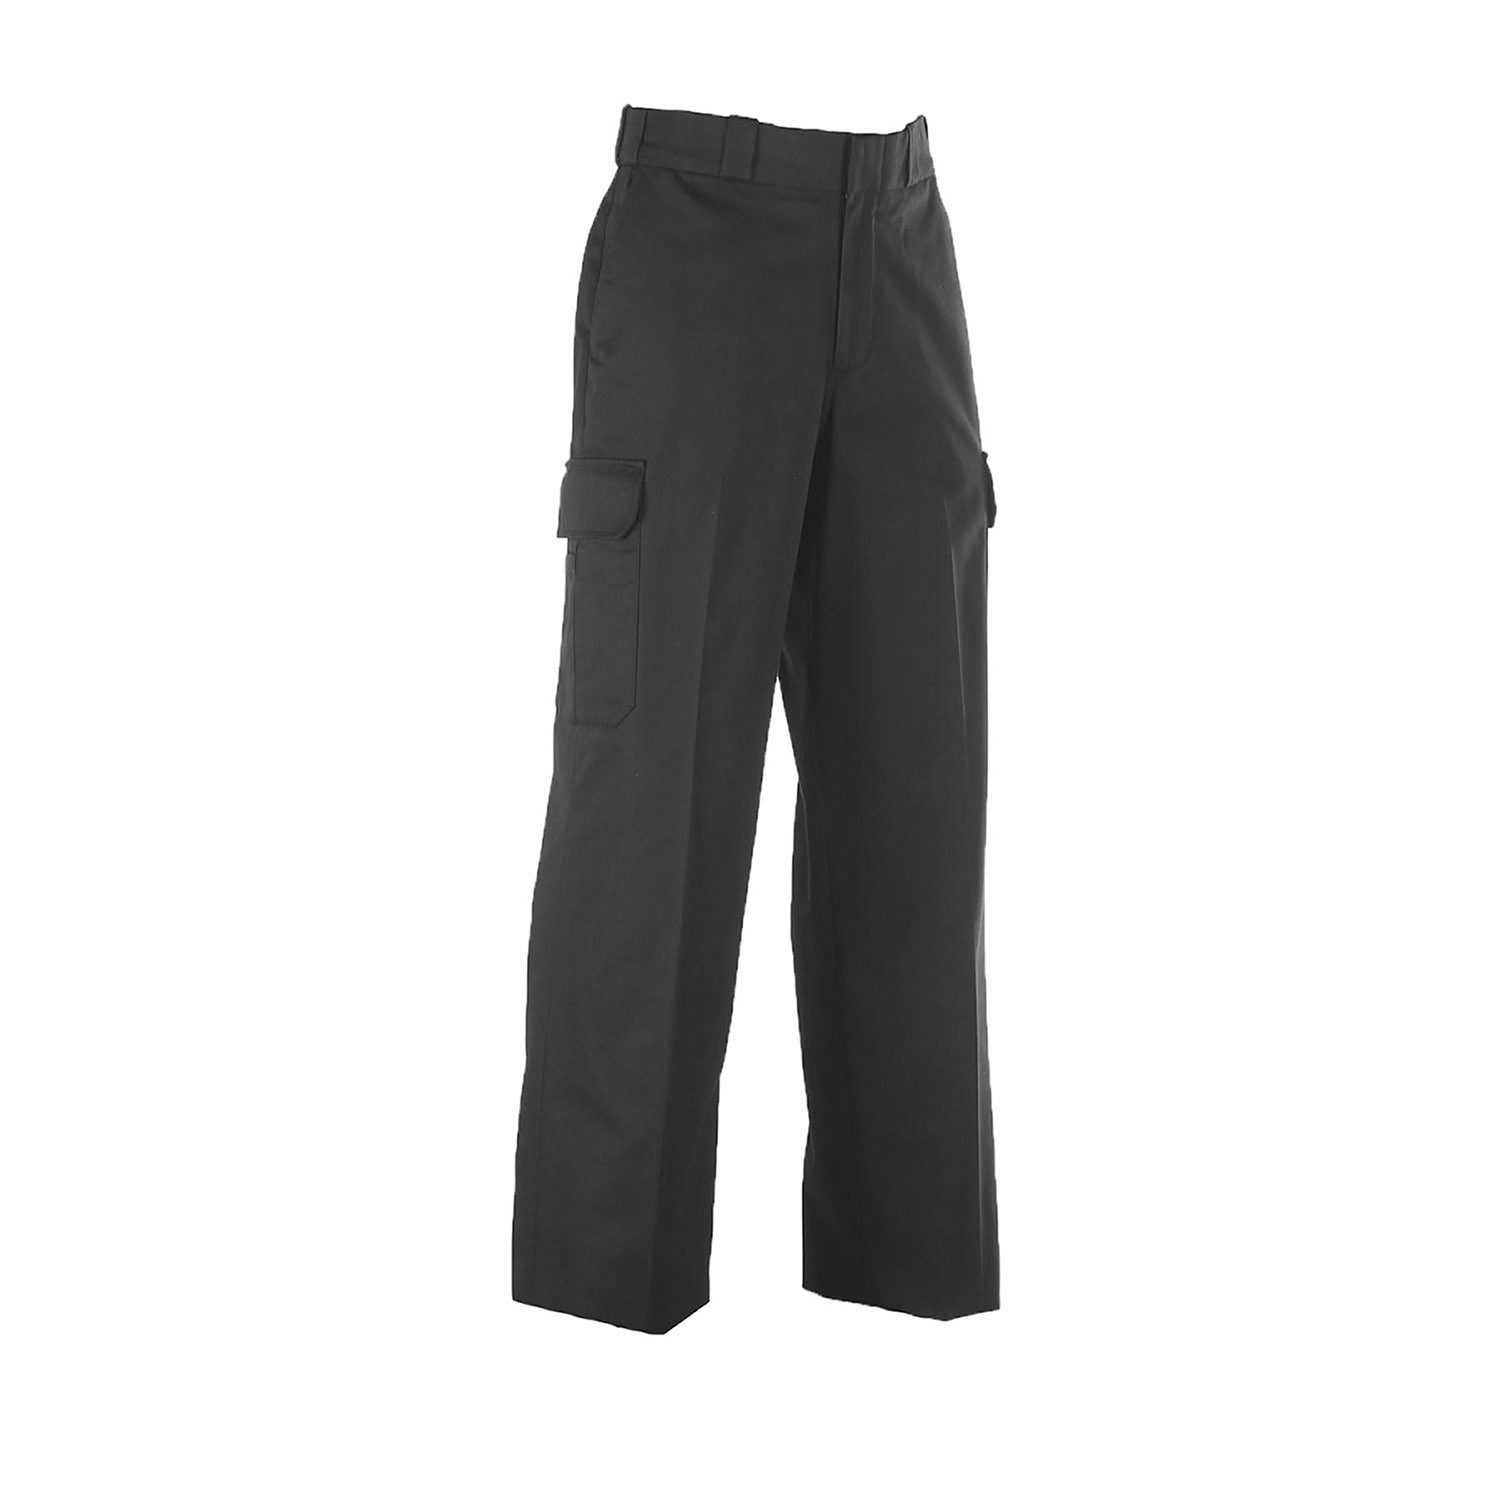 Elbeco Ladies Choice TEK3 Cargo Pants